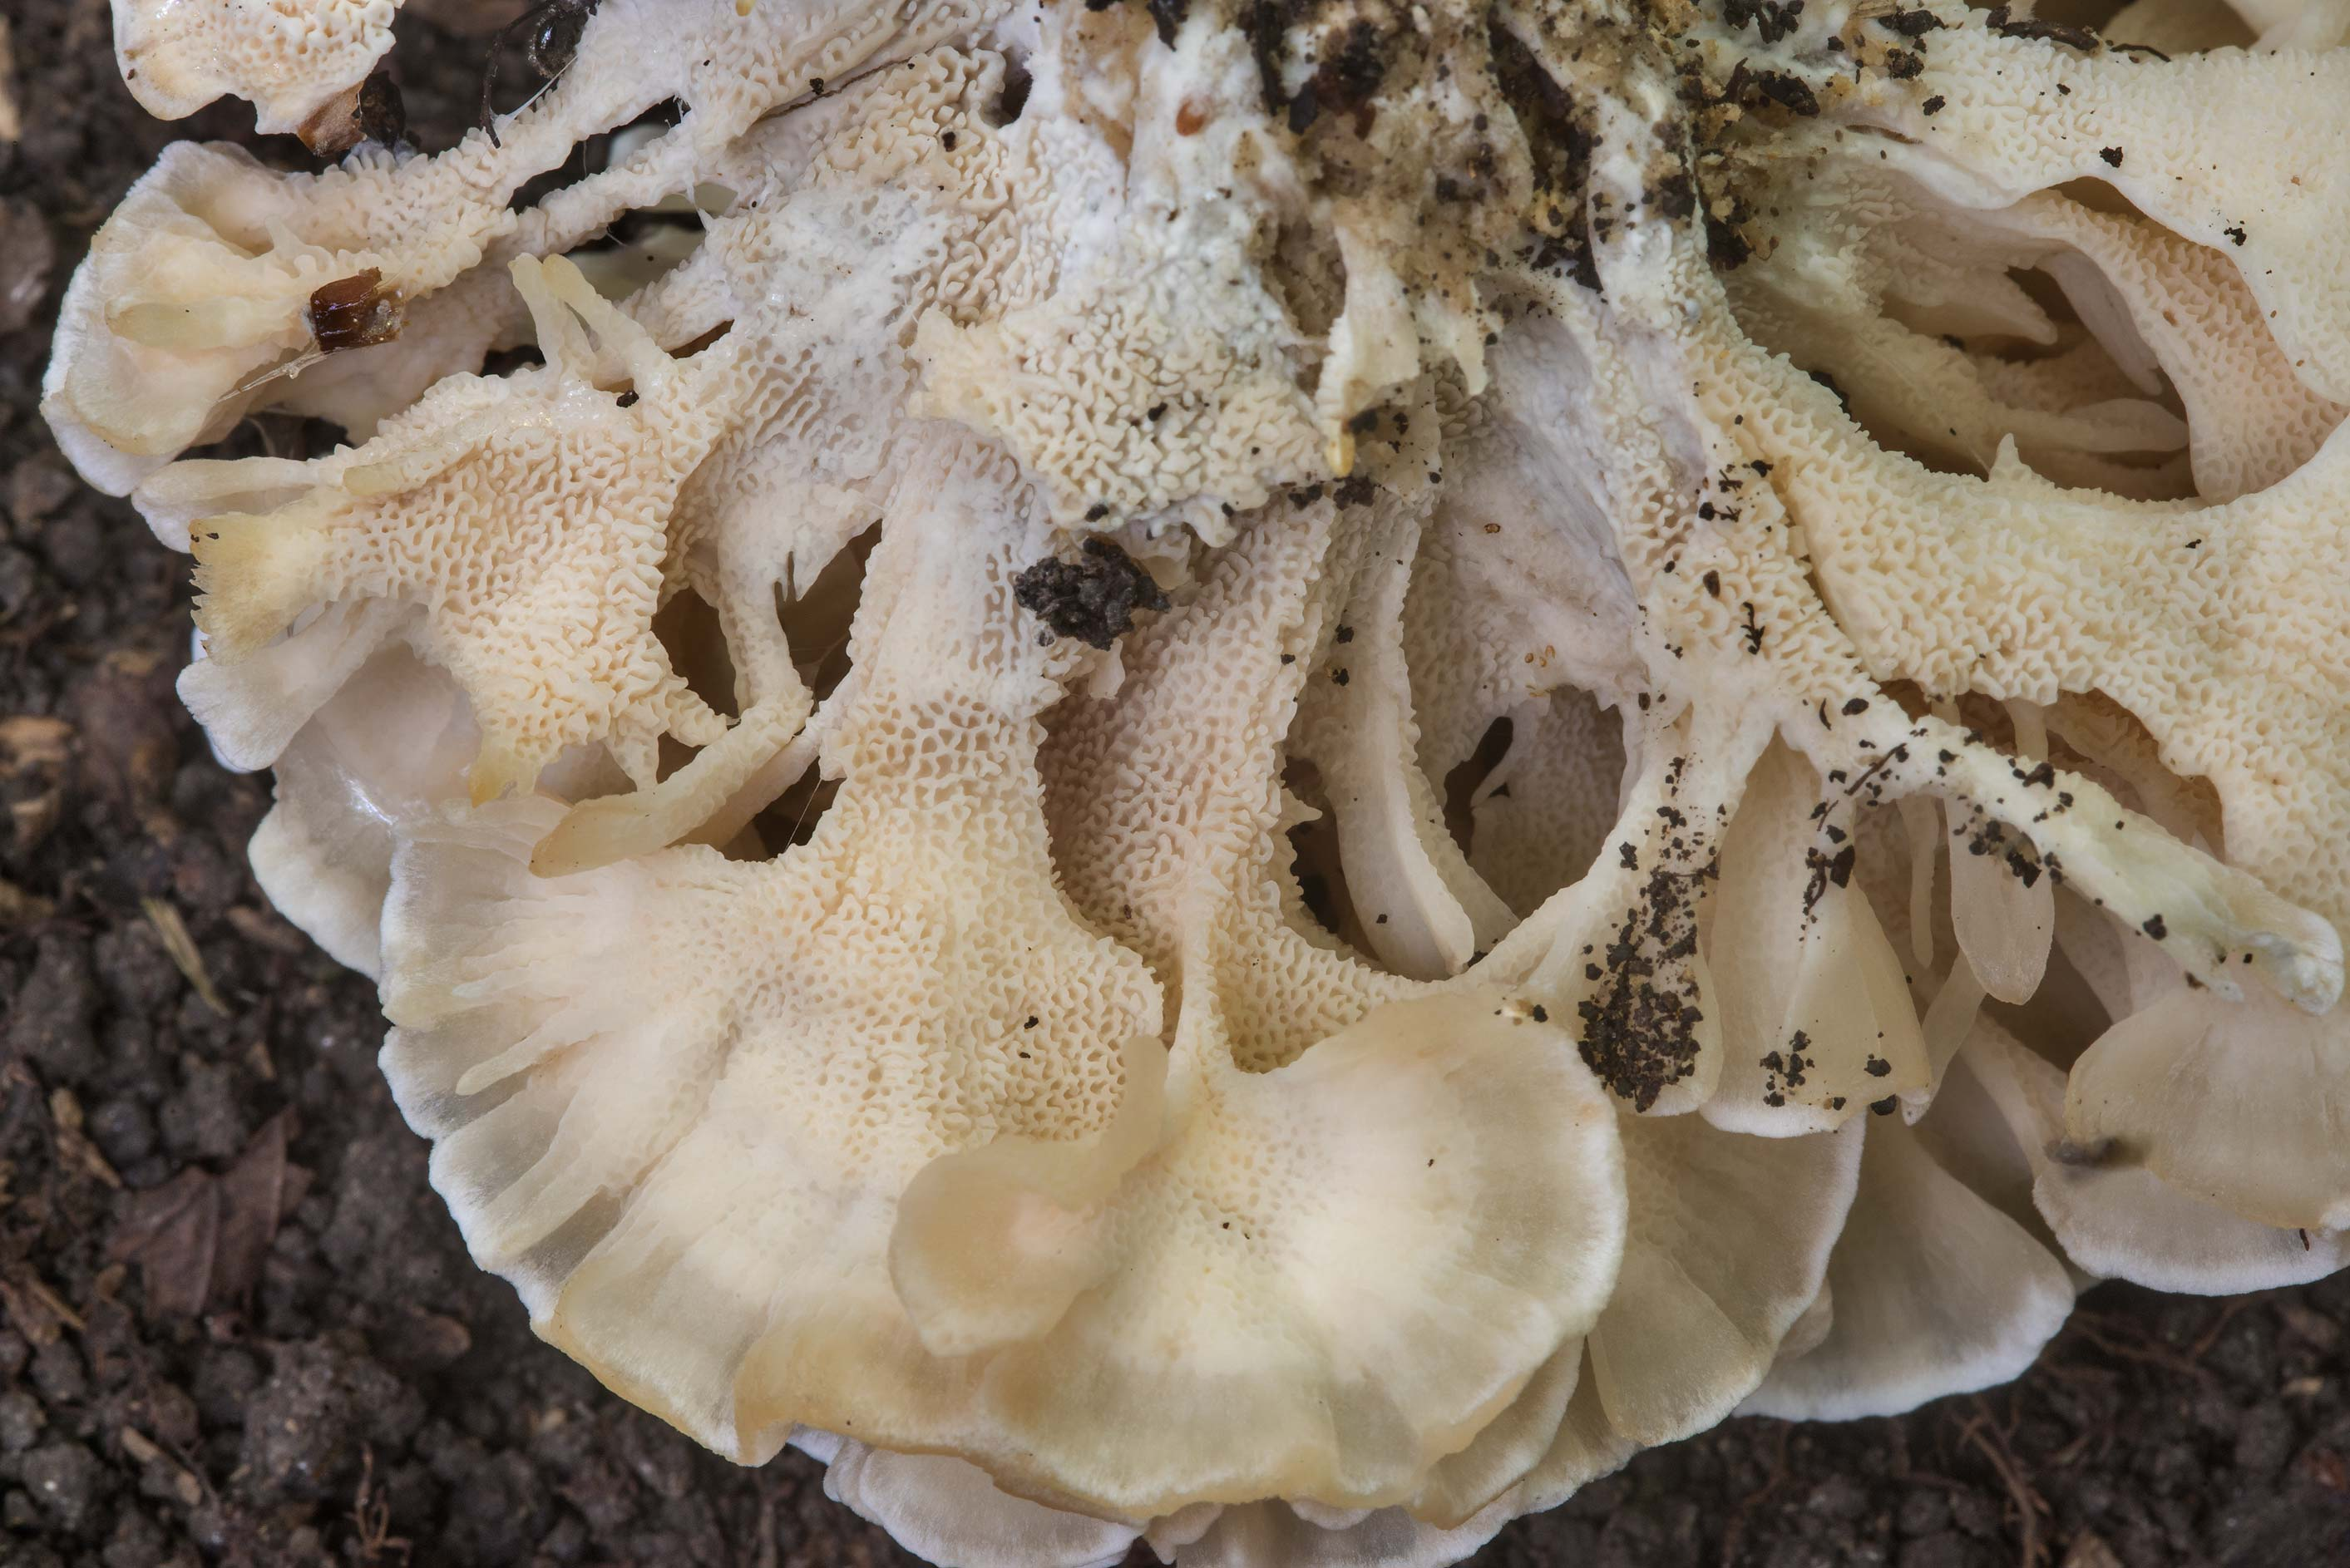 Pores of Hydnopolyporus palmatus mushroom in Lick Creek Park. College Station, Texas